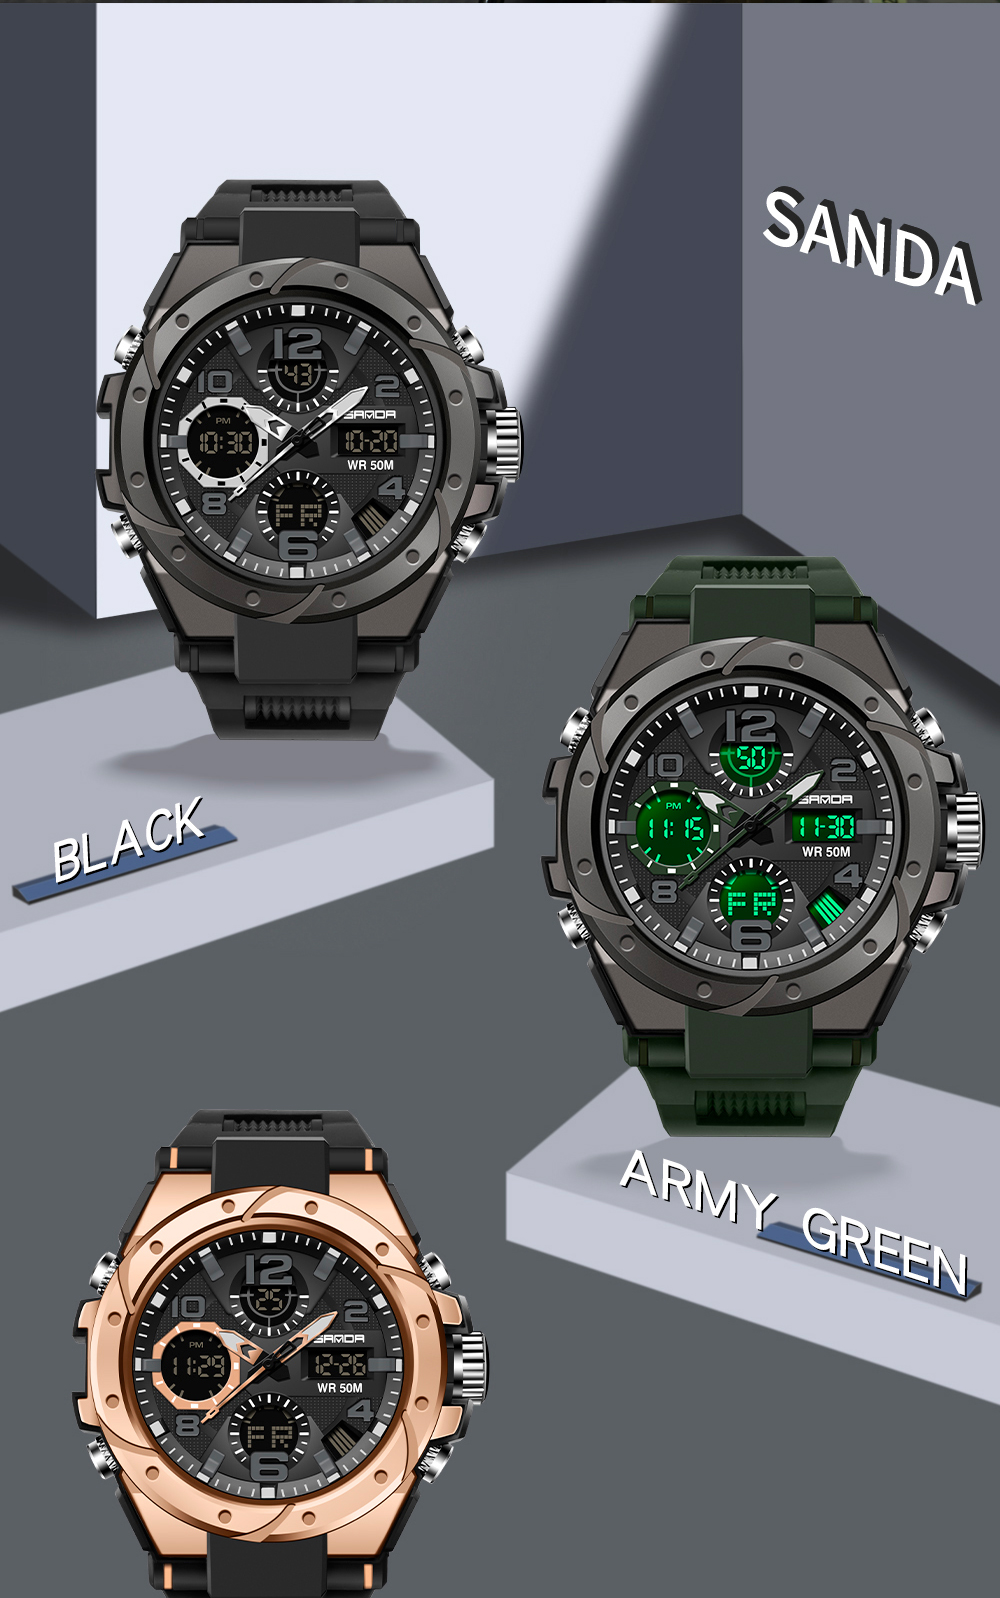 H32a6c5a1323d462fa9244c58fd5d5f5bF SANAD Top Brand Luxury Men's Military Sports Watches 5ATM Waterproof